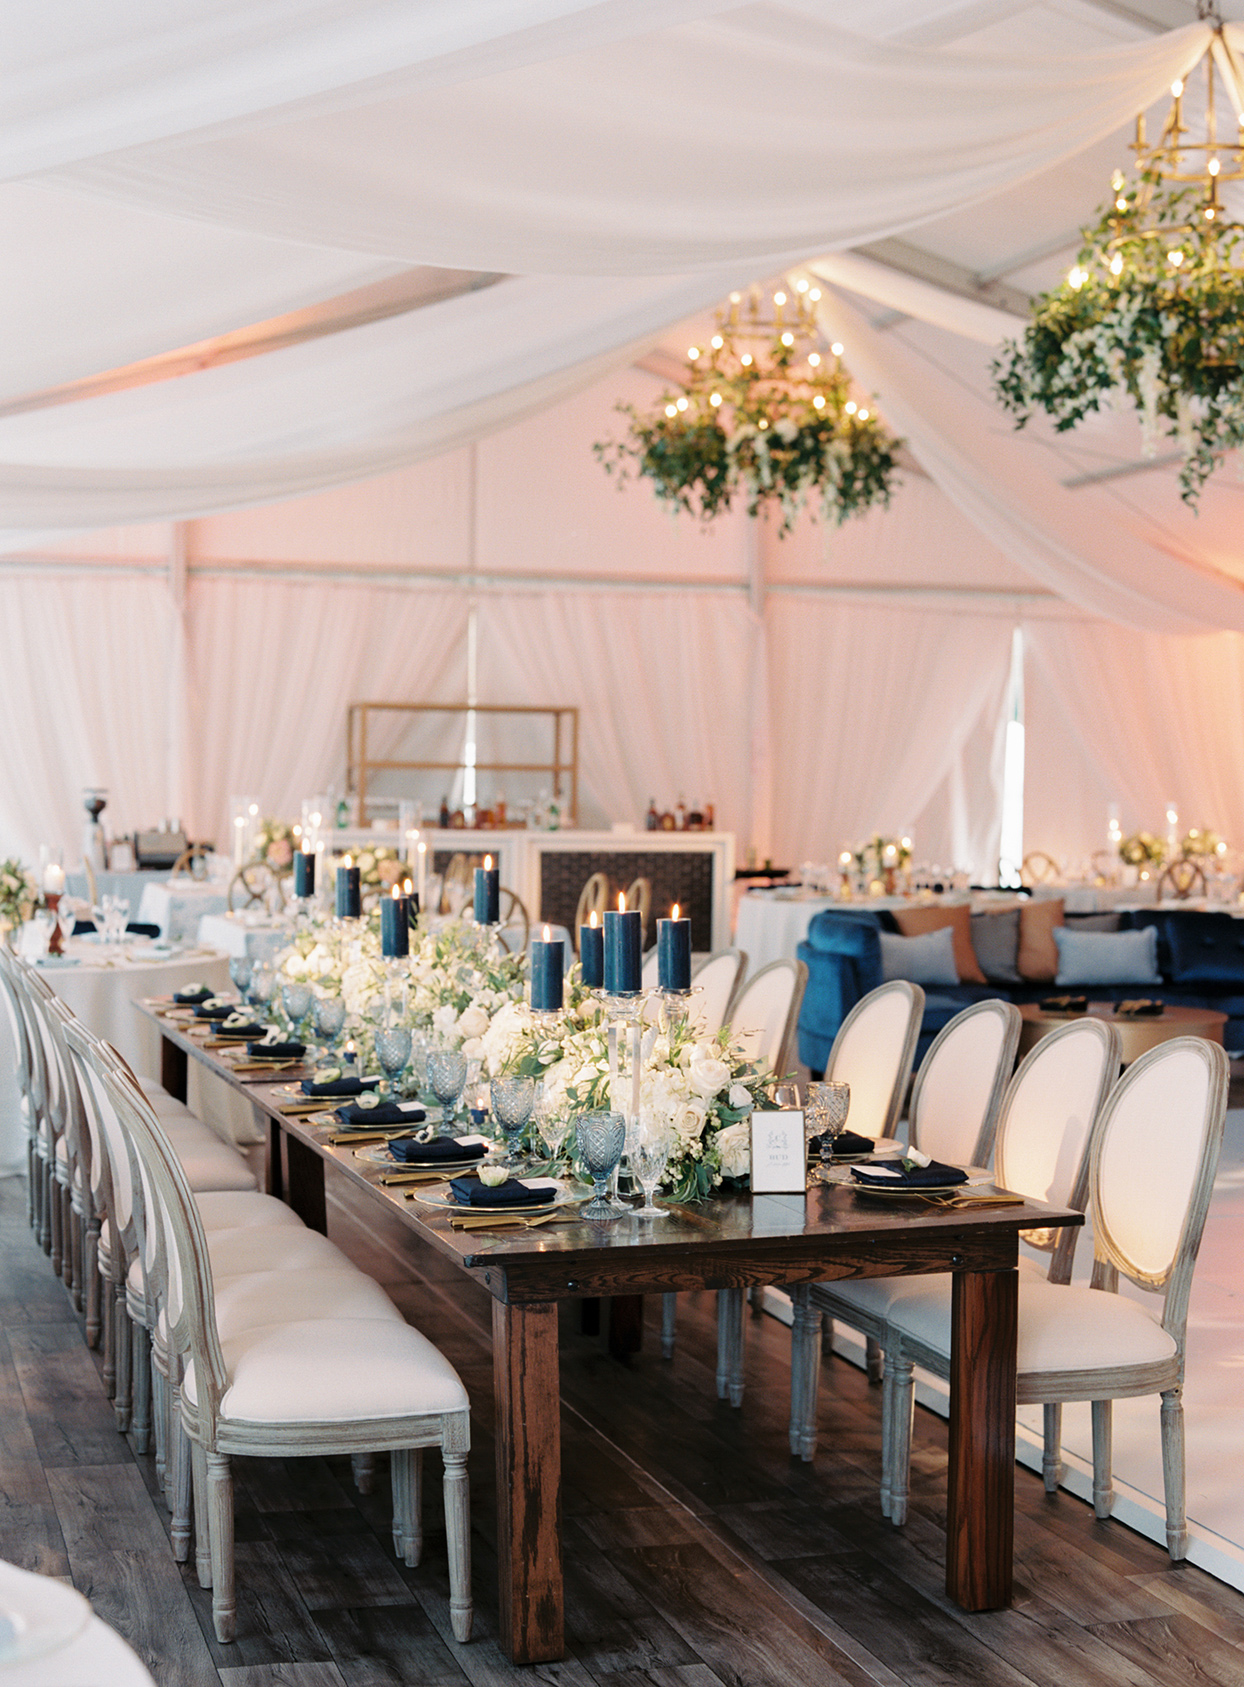 lauren chris wedding rustic long wooden table with white flowers and gold and blue place settings